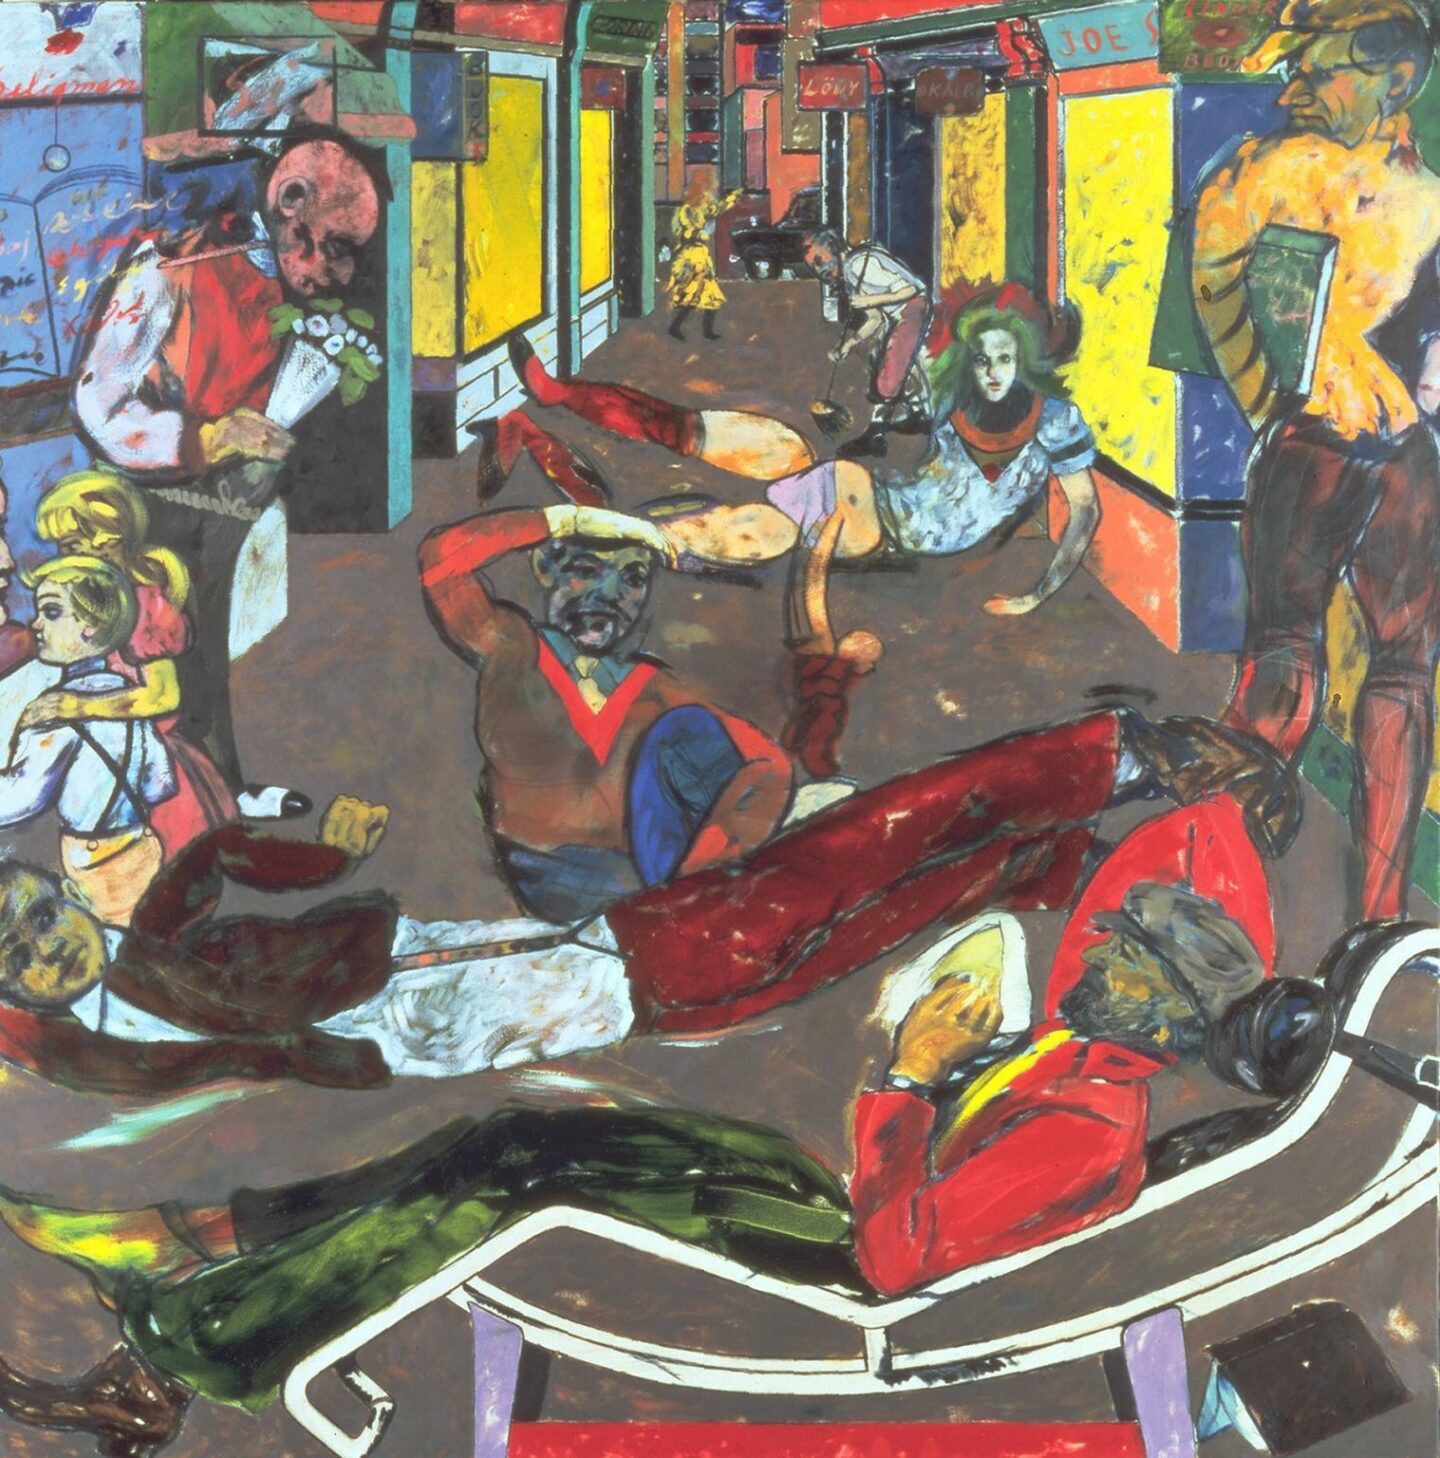 "<p>Dias­porist painter R.B. Kita­j's <span class=""numbers"">1984</span> paint­ing <span class=""push-double""></span>​<span class=""pull-double"">""</span>Cecil Court, Lon­don W.C.<span class=""numbers"">2</span>. (The Refugees)"" depicts dias­poric Yid­dish life. <a href=""http://www.tate.org.uk/art/artworks/kitaj-cecil-court-london-w-c-2-the-refugees-t04115"">Tate Muse­um, Lon­don</a>.</p>"